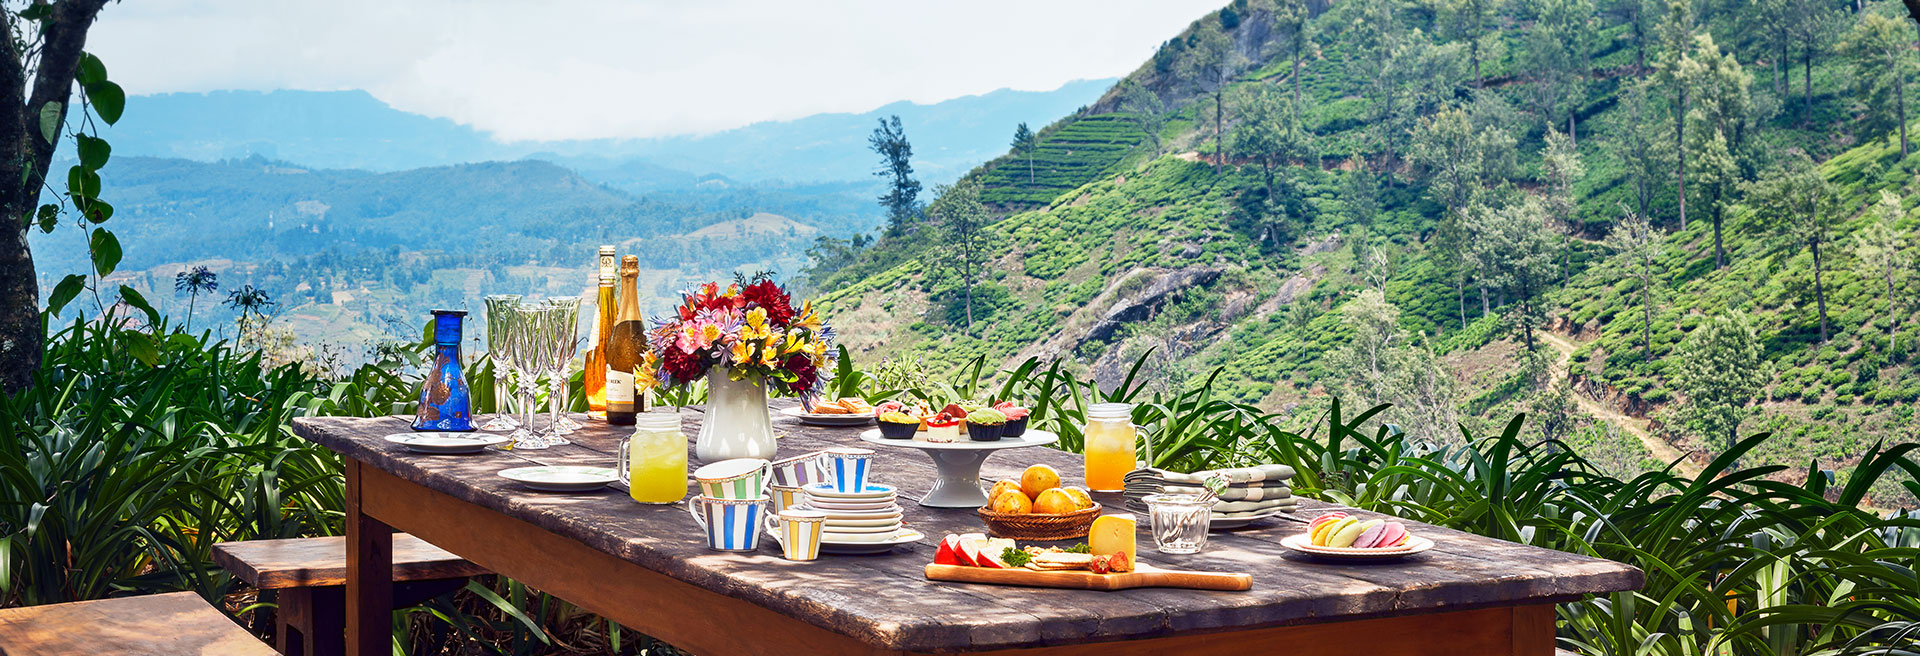 Breakfast set out on with a hillside view